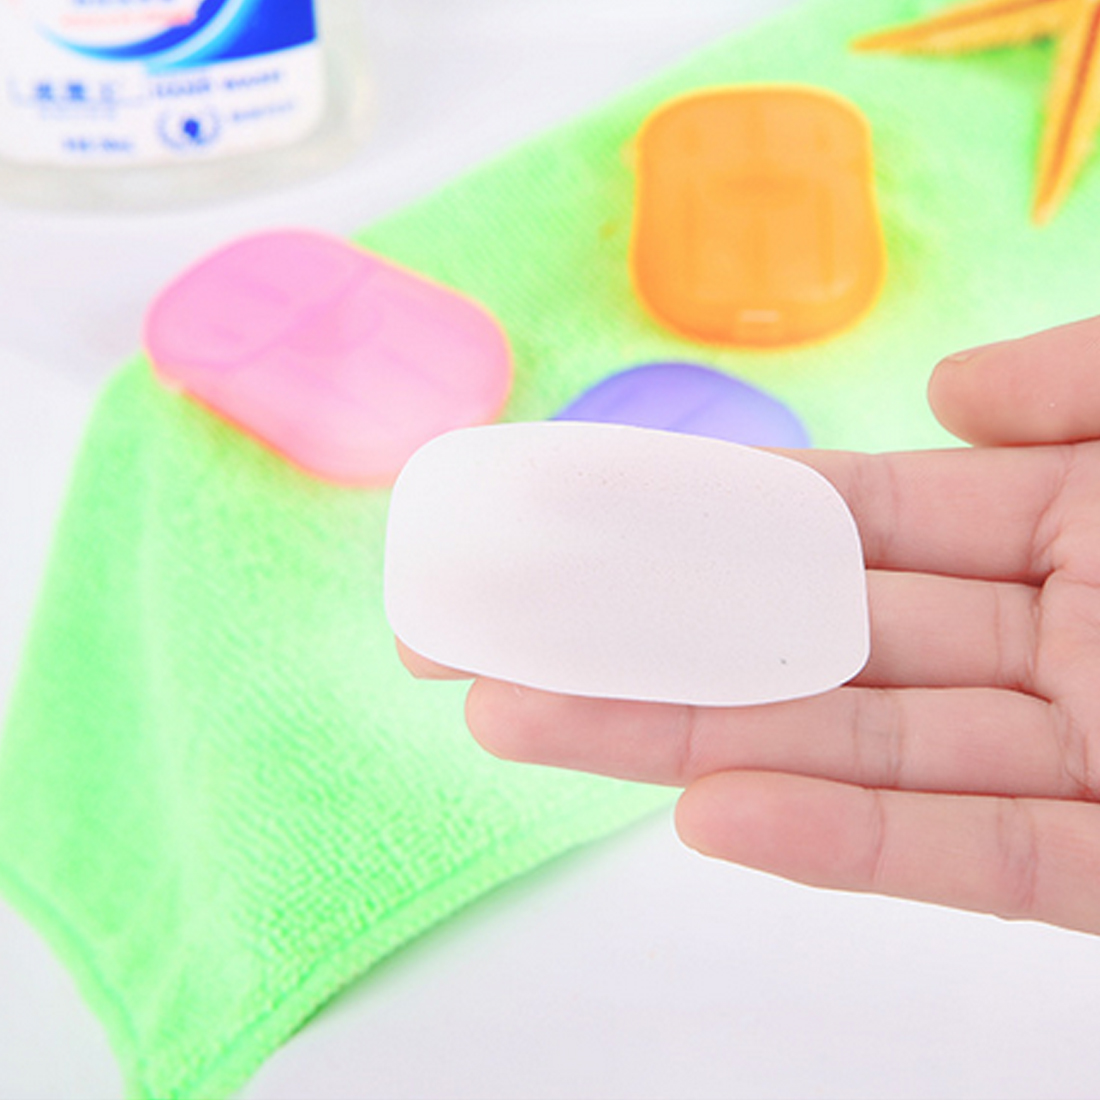 Soap Paper 20pcs Disposable Boxed Travel Portable Outdoor Hand Washing Cleaning Scented Slice Sheets Mini Paper Soap Random